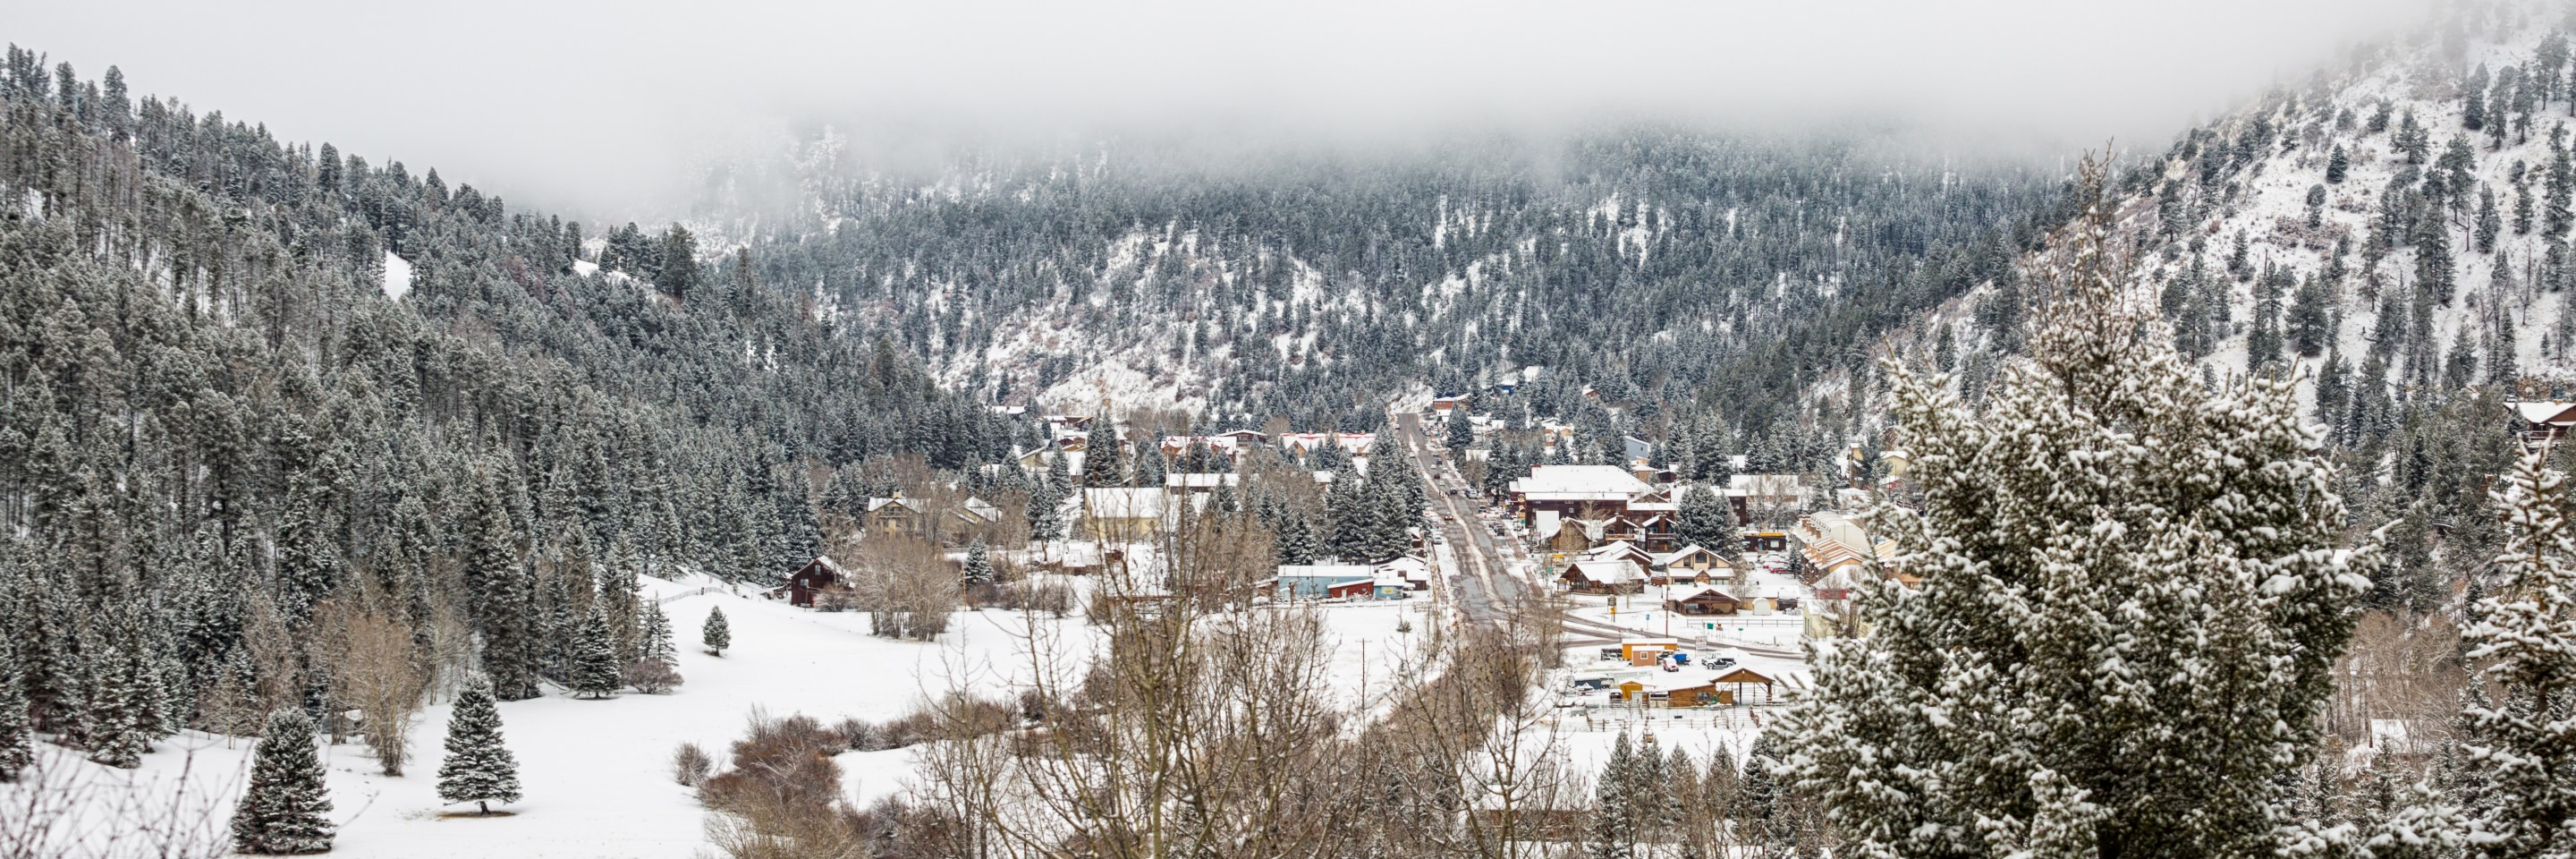 the town of Red River in winter - weekend getaways in New Mexico